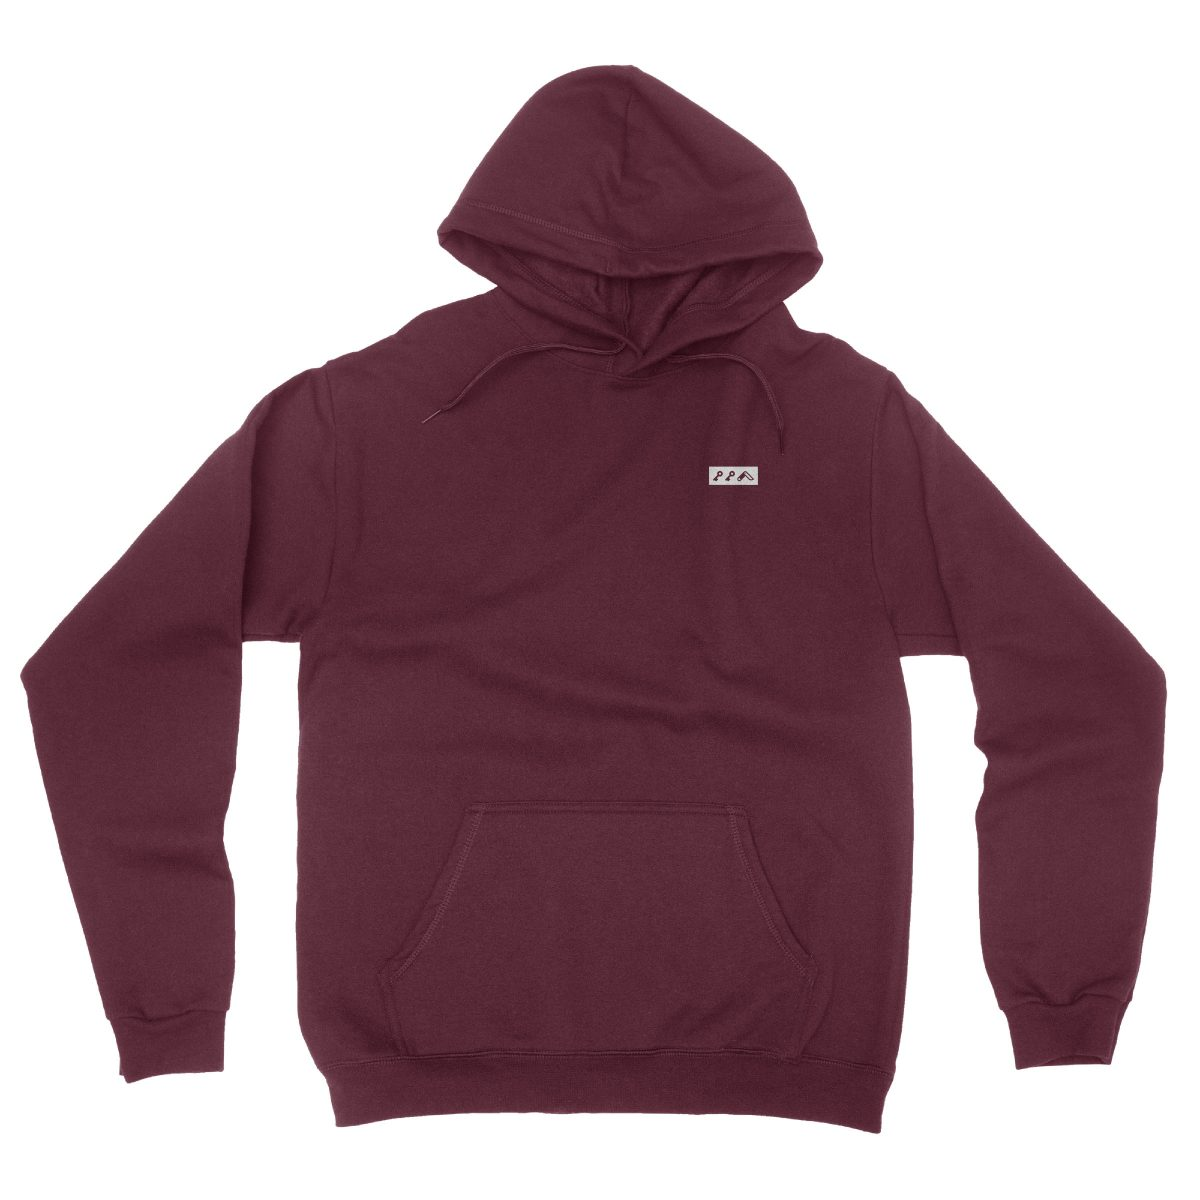 KIKICUTT white icon on an maroon classic and comfortable hoodie